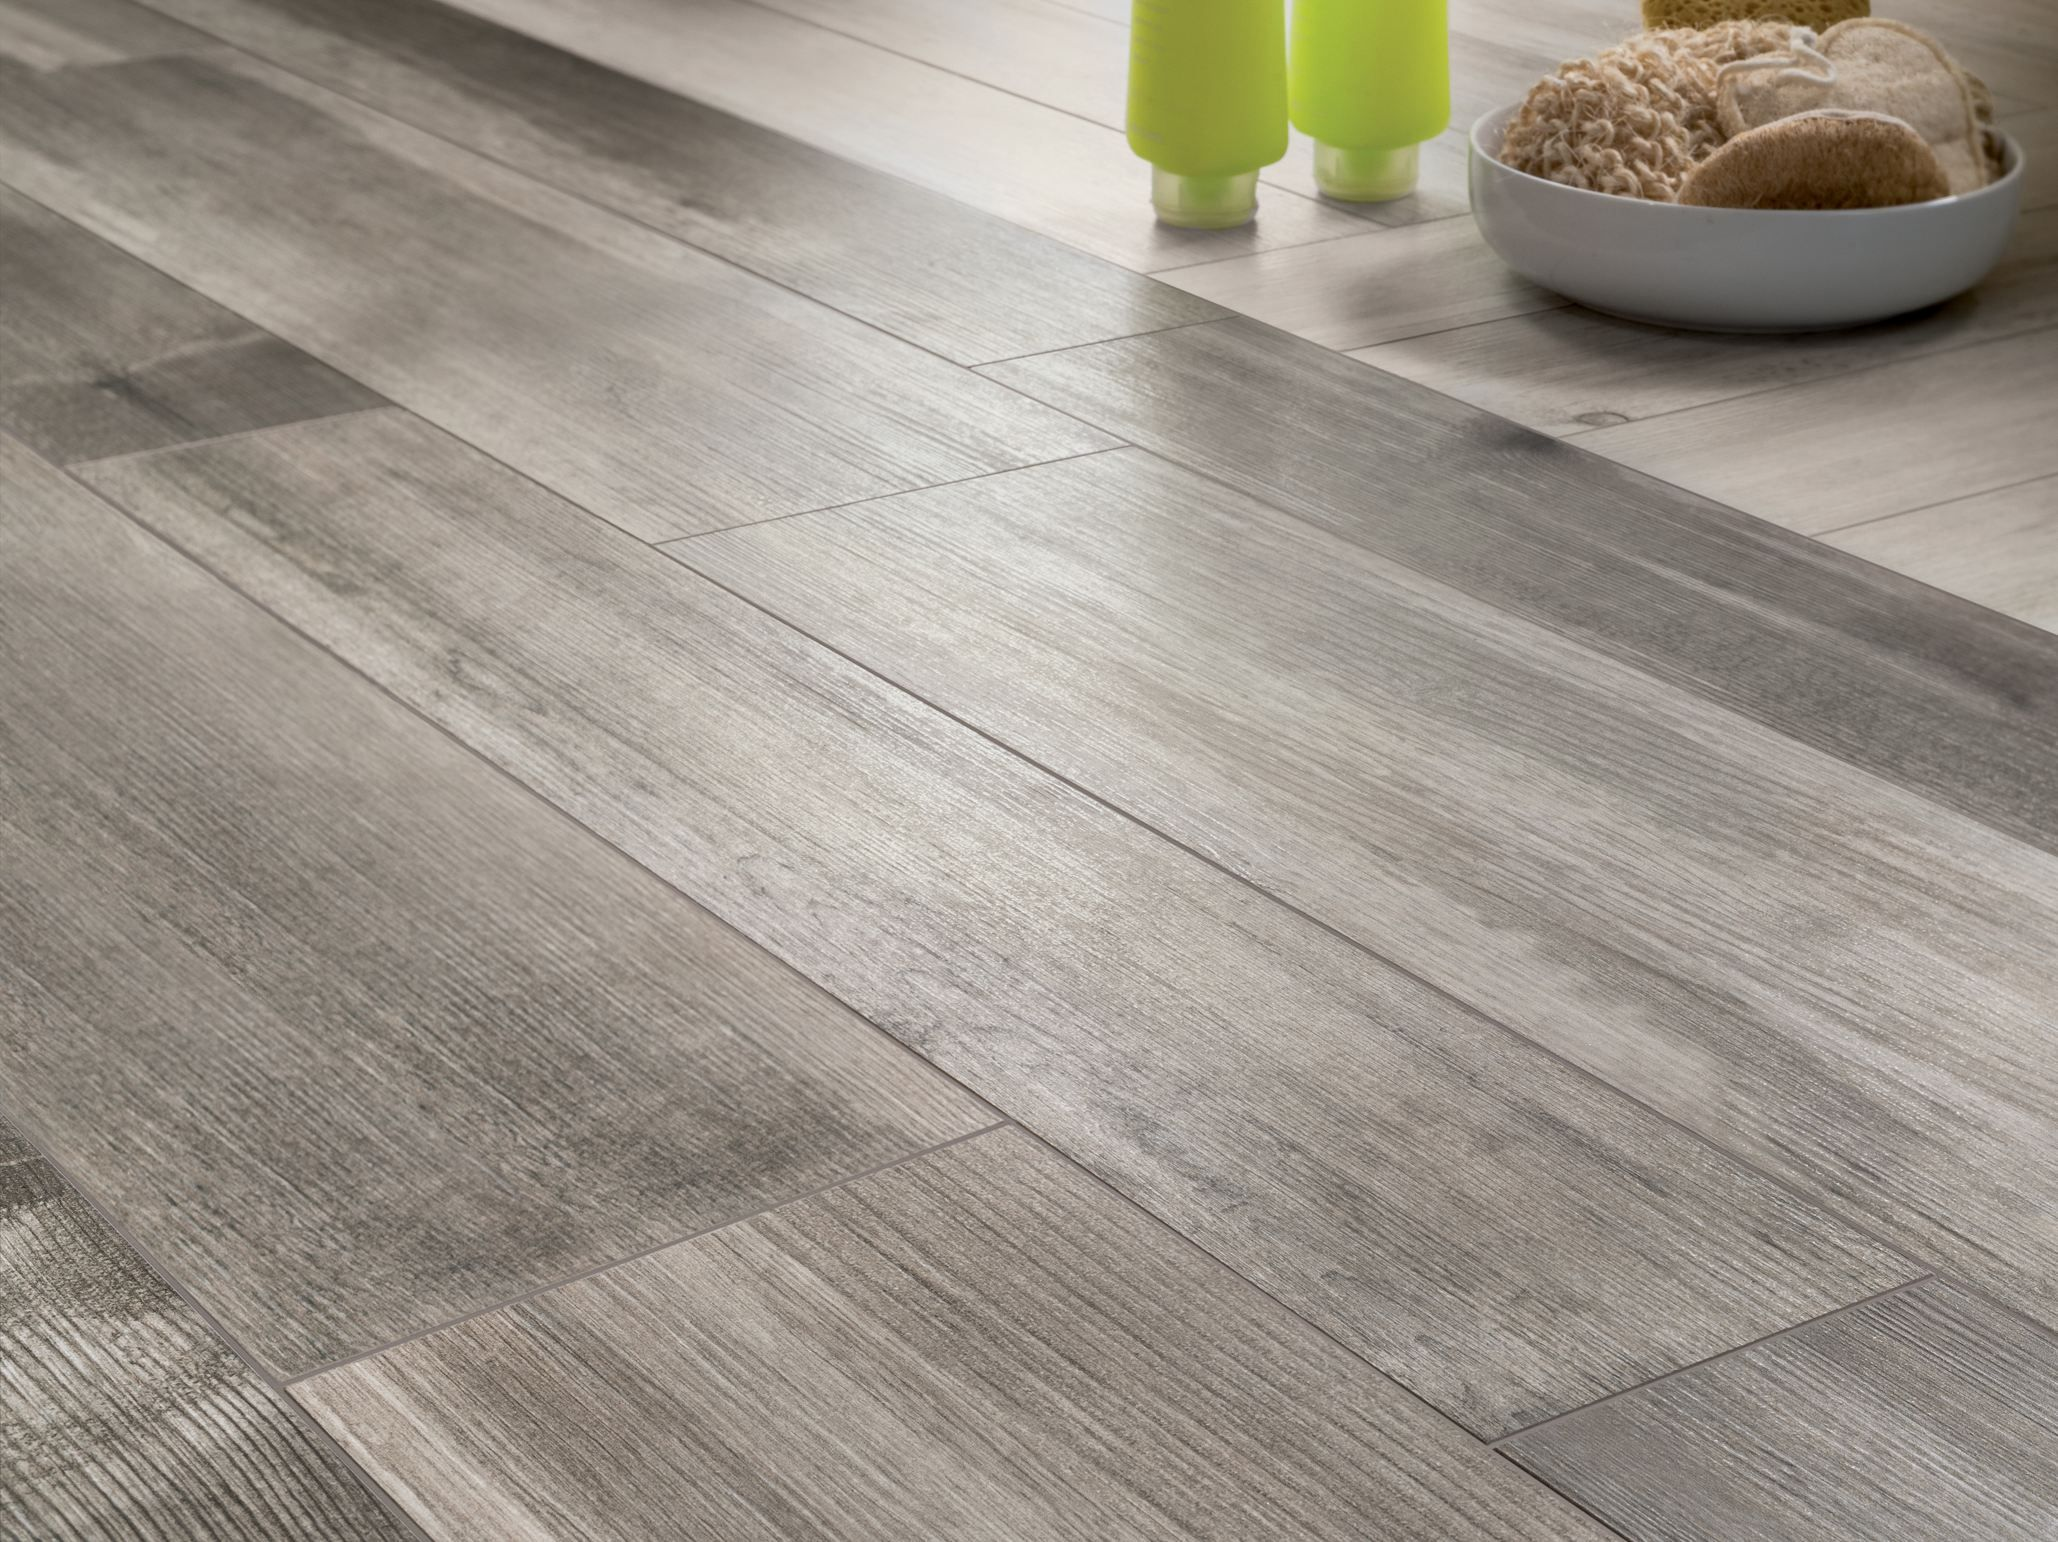 Kitchen floor tiles wood effect - Find This Pin And More On Simil Madero Medium Grey Wooden Floor Tiles